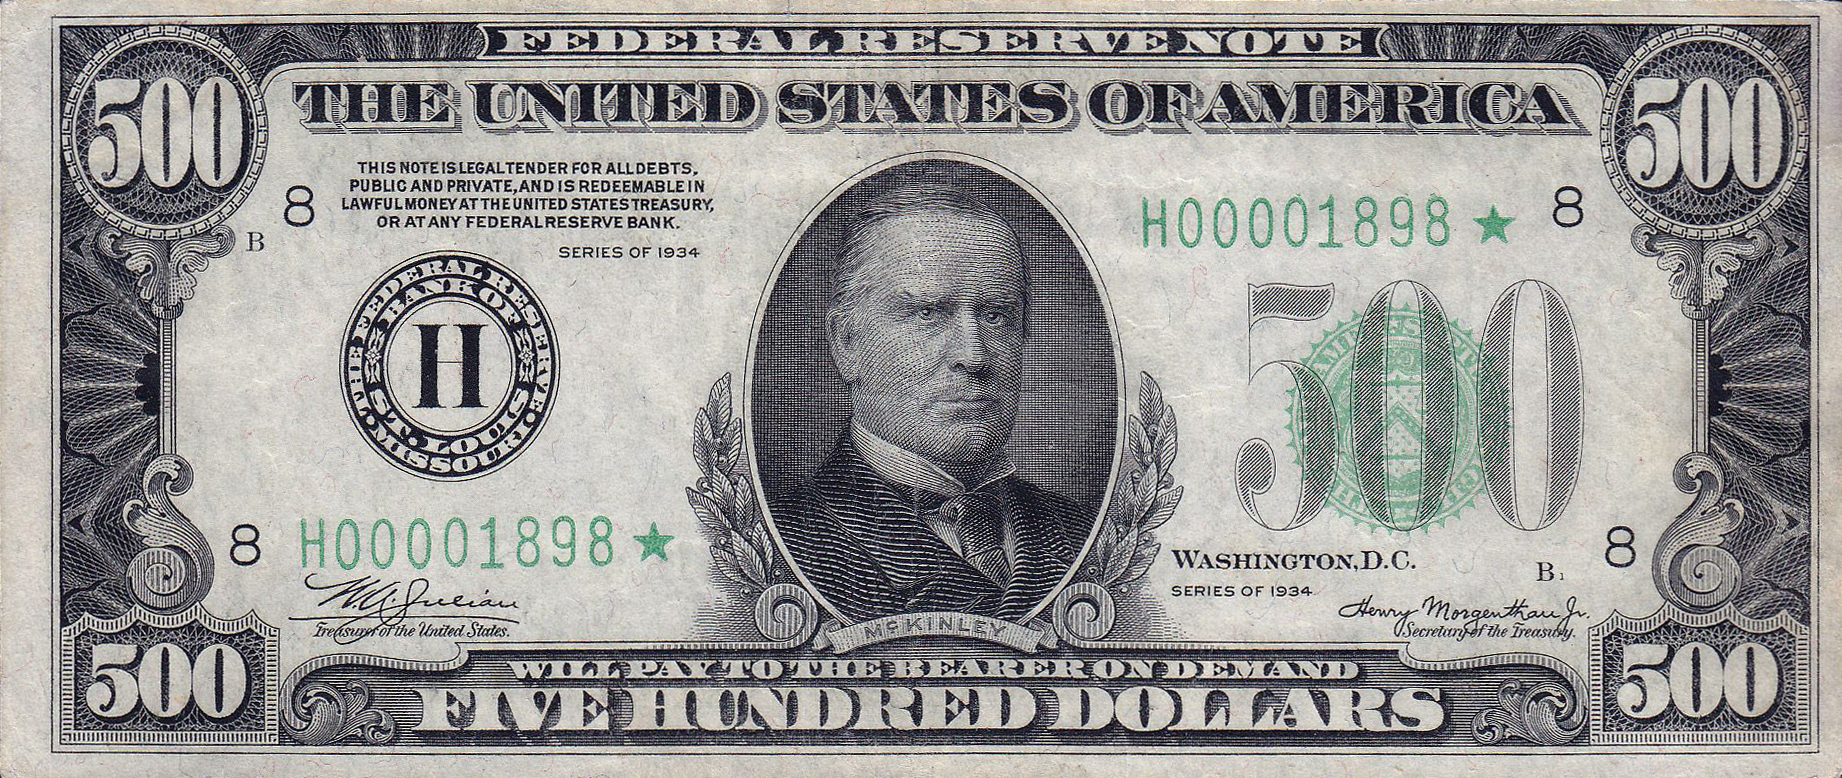 William McKinley was pictured on the 500 United States dollars bill, Series 1928 & 1934